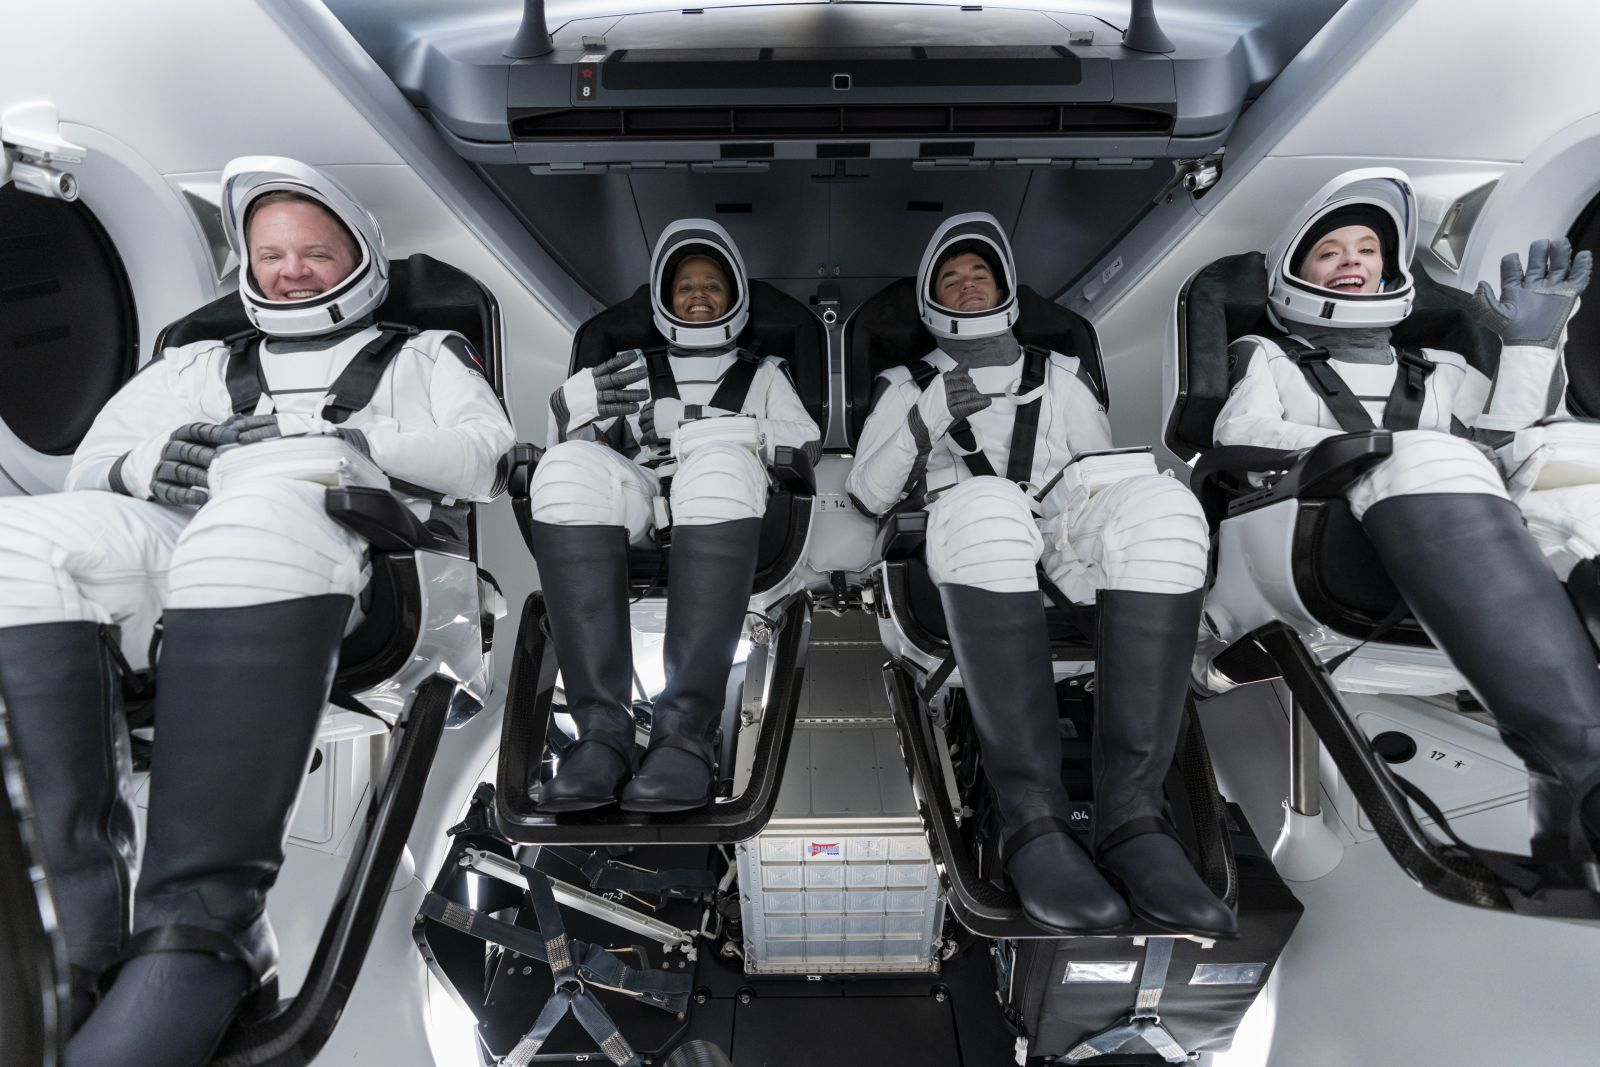 The Inspiration4 crew in their Dragon spacecraft during a launch rehearsal on Sept. 12, 2021. From left to right: Chris Sembroski, Sian Proctor, Jared Isaacman and Hayley Arceneaux. Credit: Inspiration4 / John Kraus